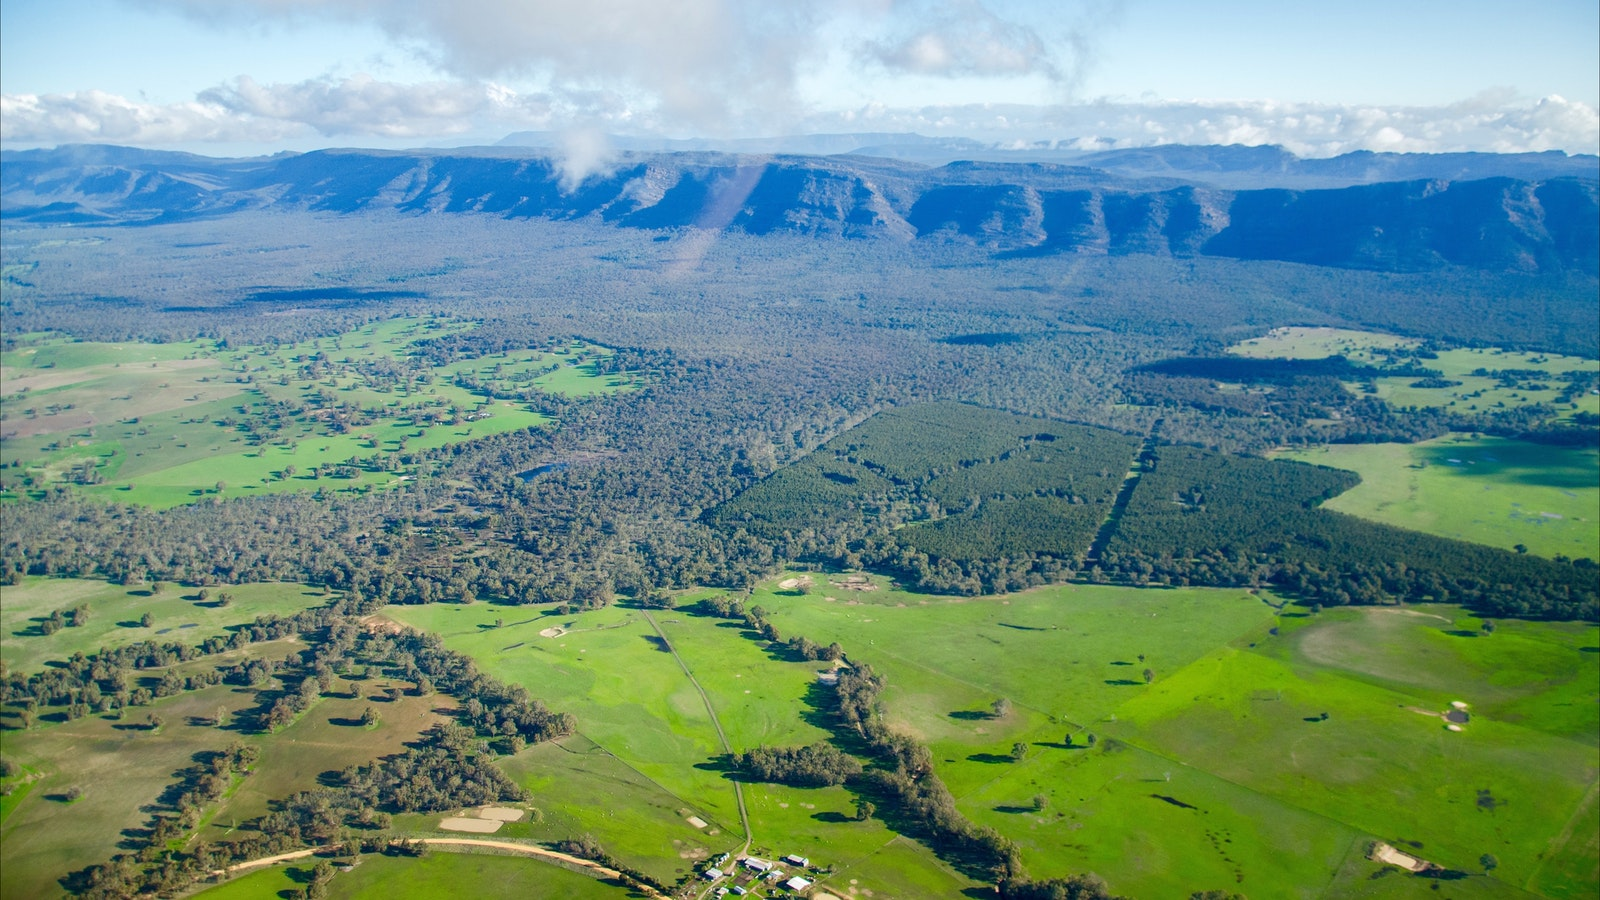 Grampians National Park in the distance